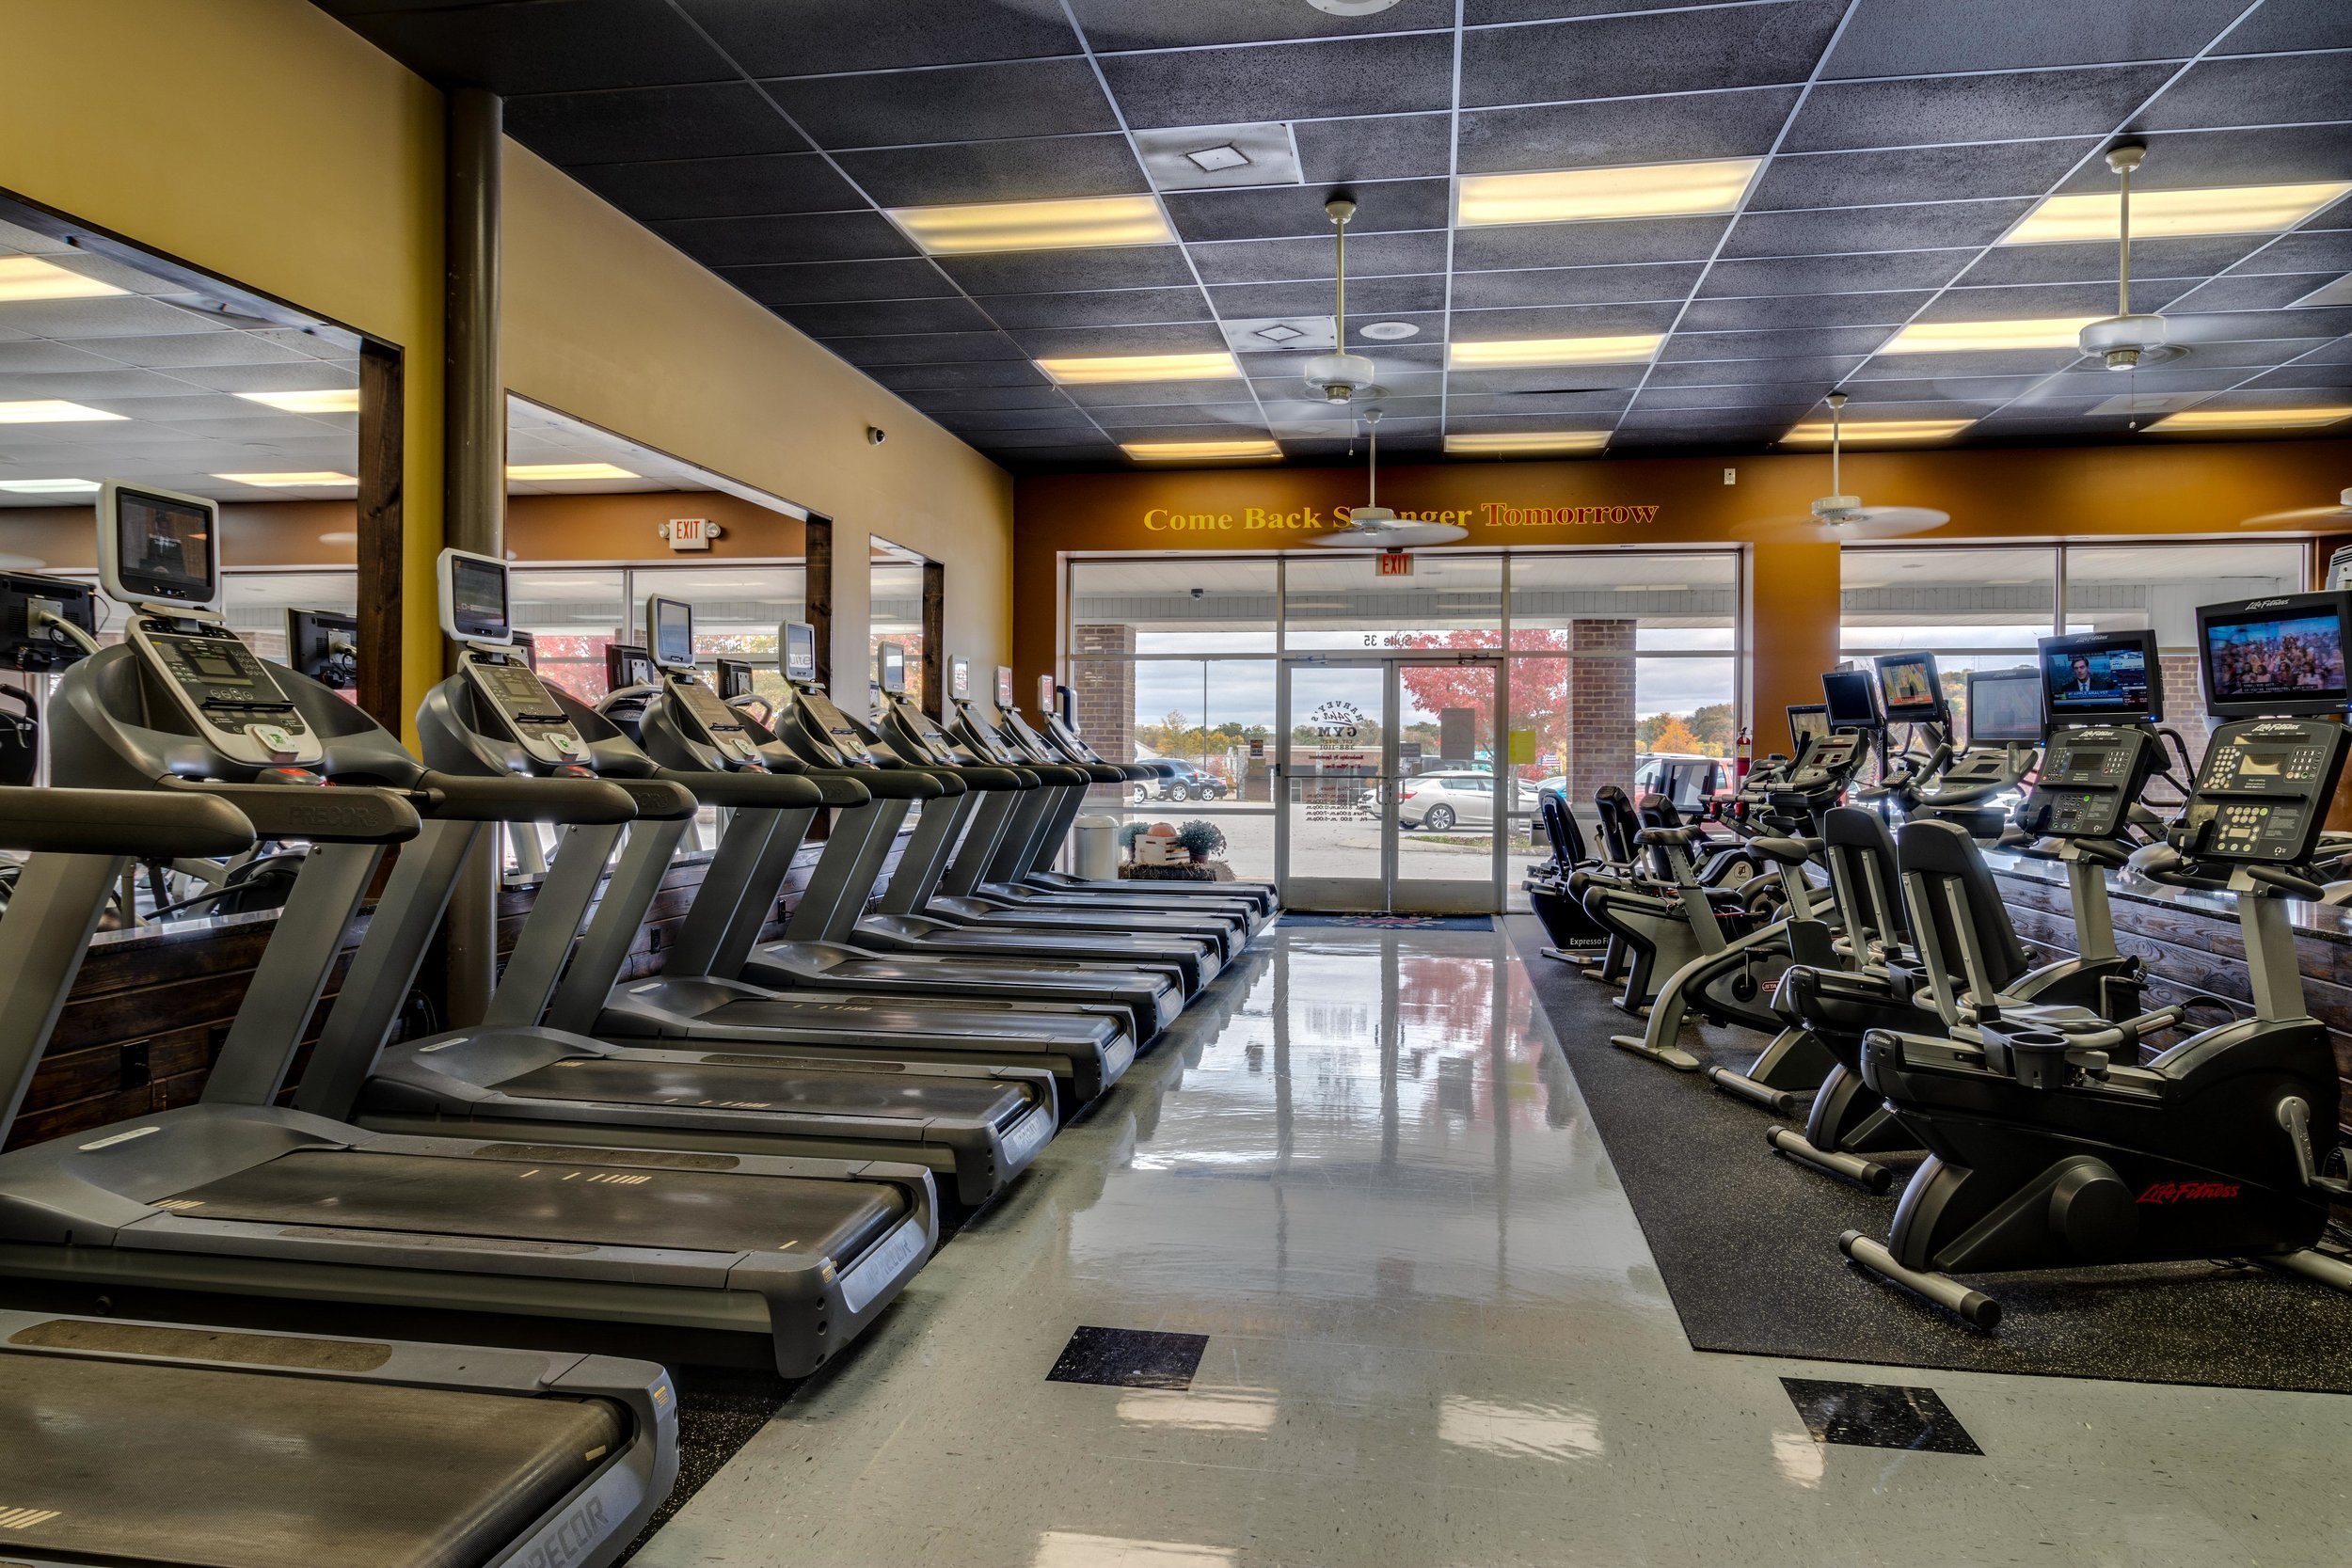 Harvey's Gym Columbia Tennessee kenneth purdom LORES (39 of 90).jpg